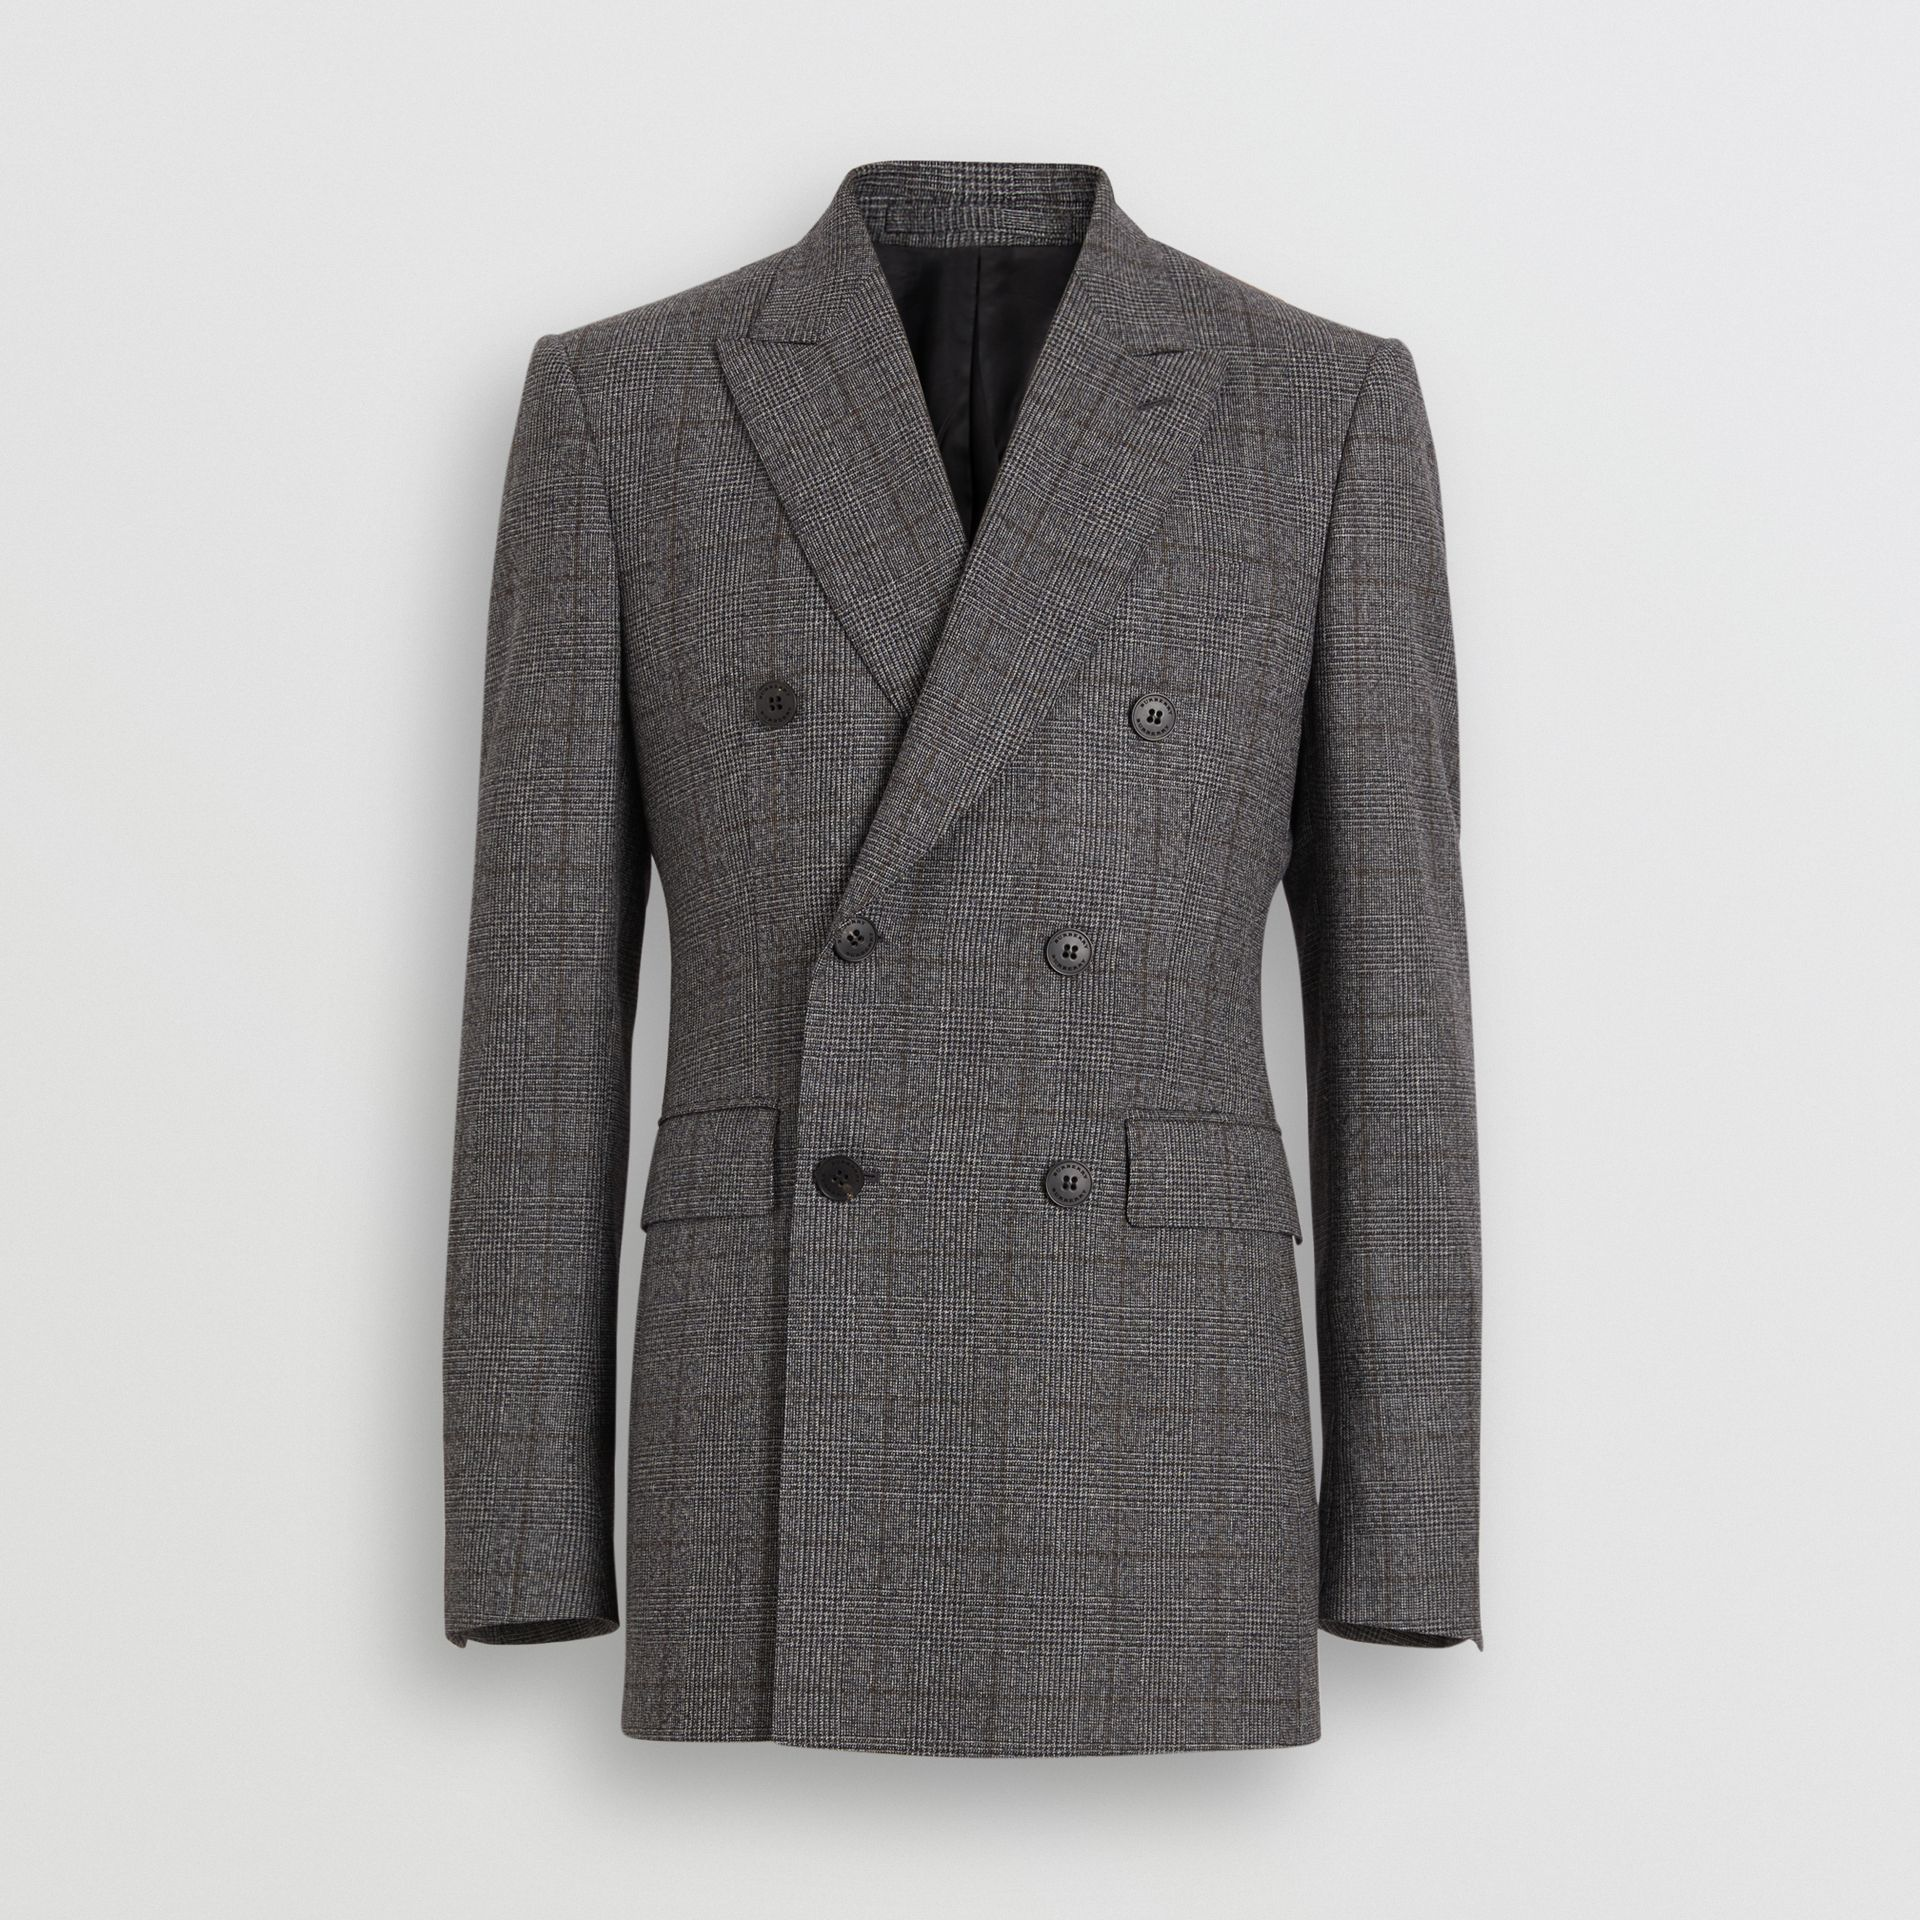 Classic Fit Prince of Wales Check Wool Suit in Charcoal Melange - Men | Burberry United Kingdom - gallery image 3